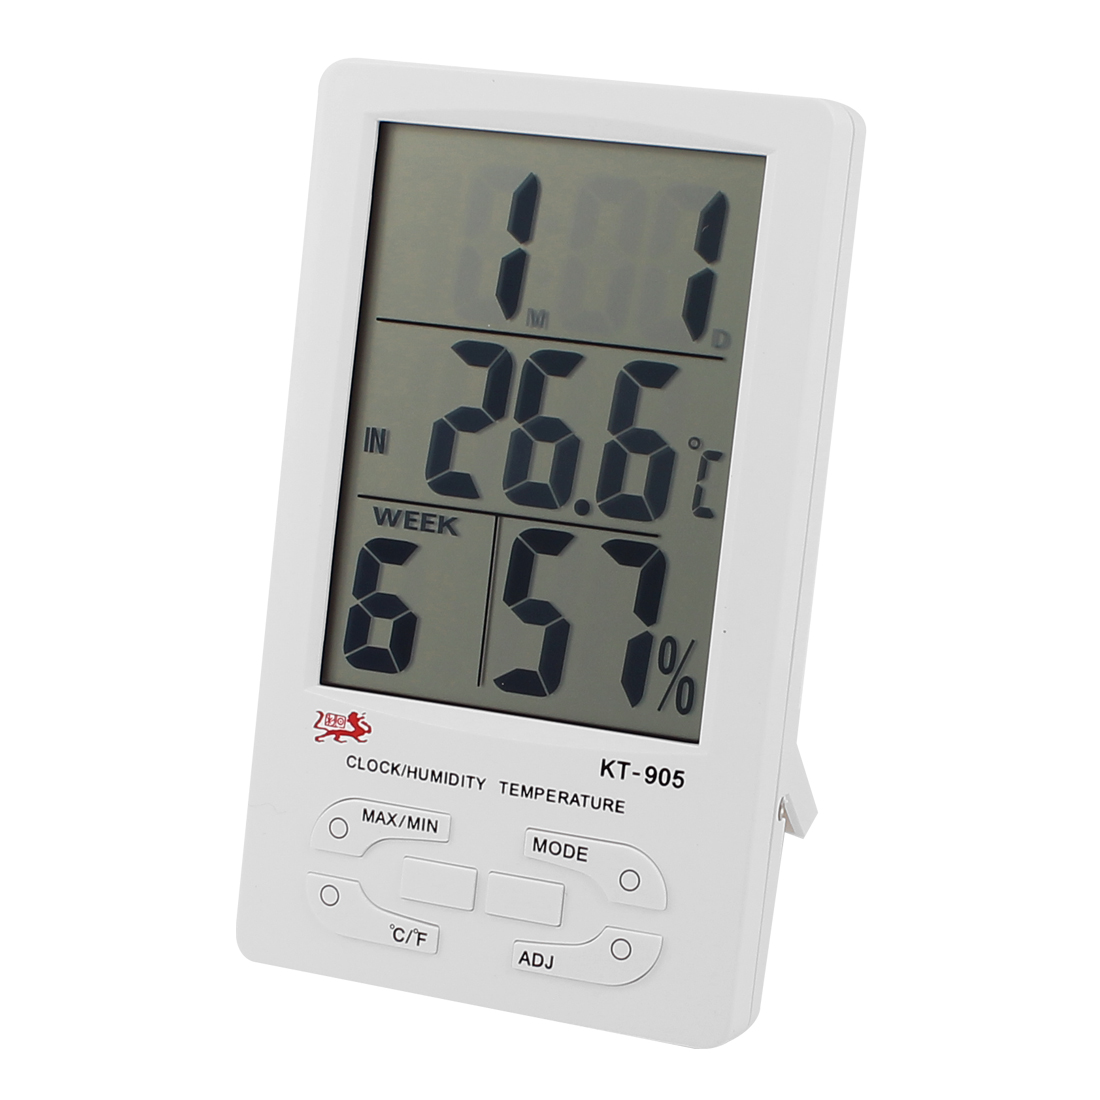 Unique Bargains LCD Digital Screen Temperature Humidity Hygrometer Meter White KT-905 by